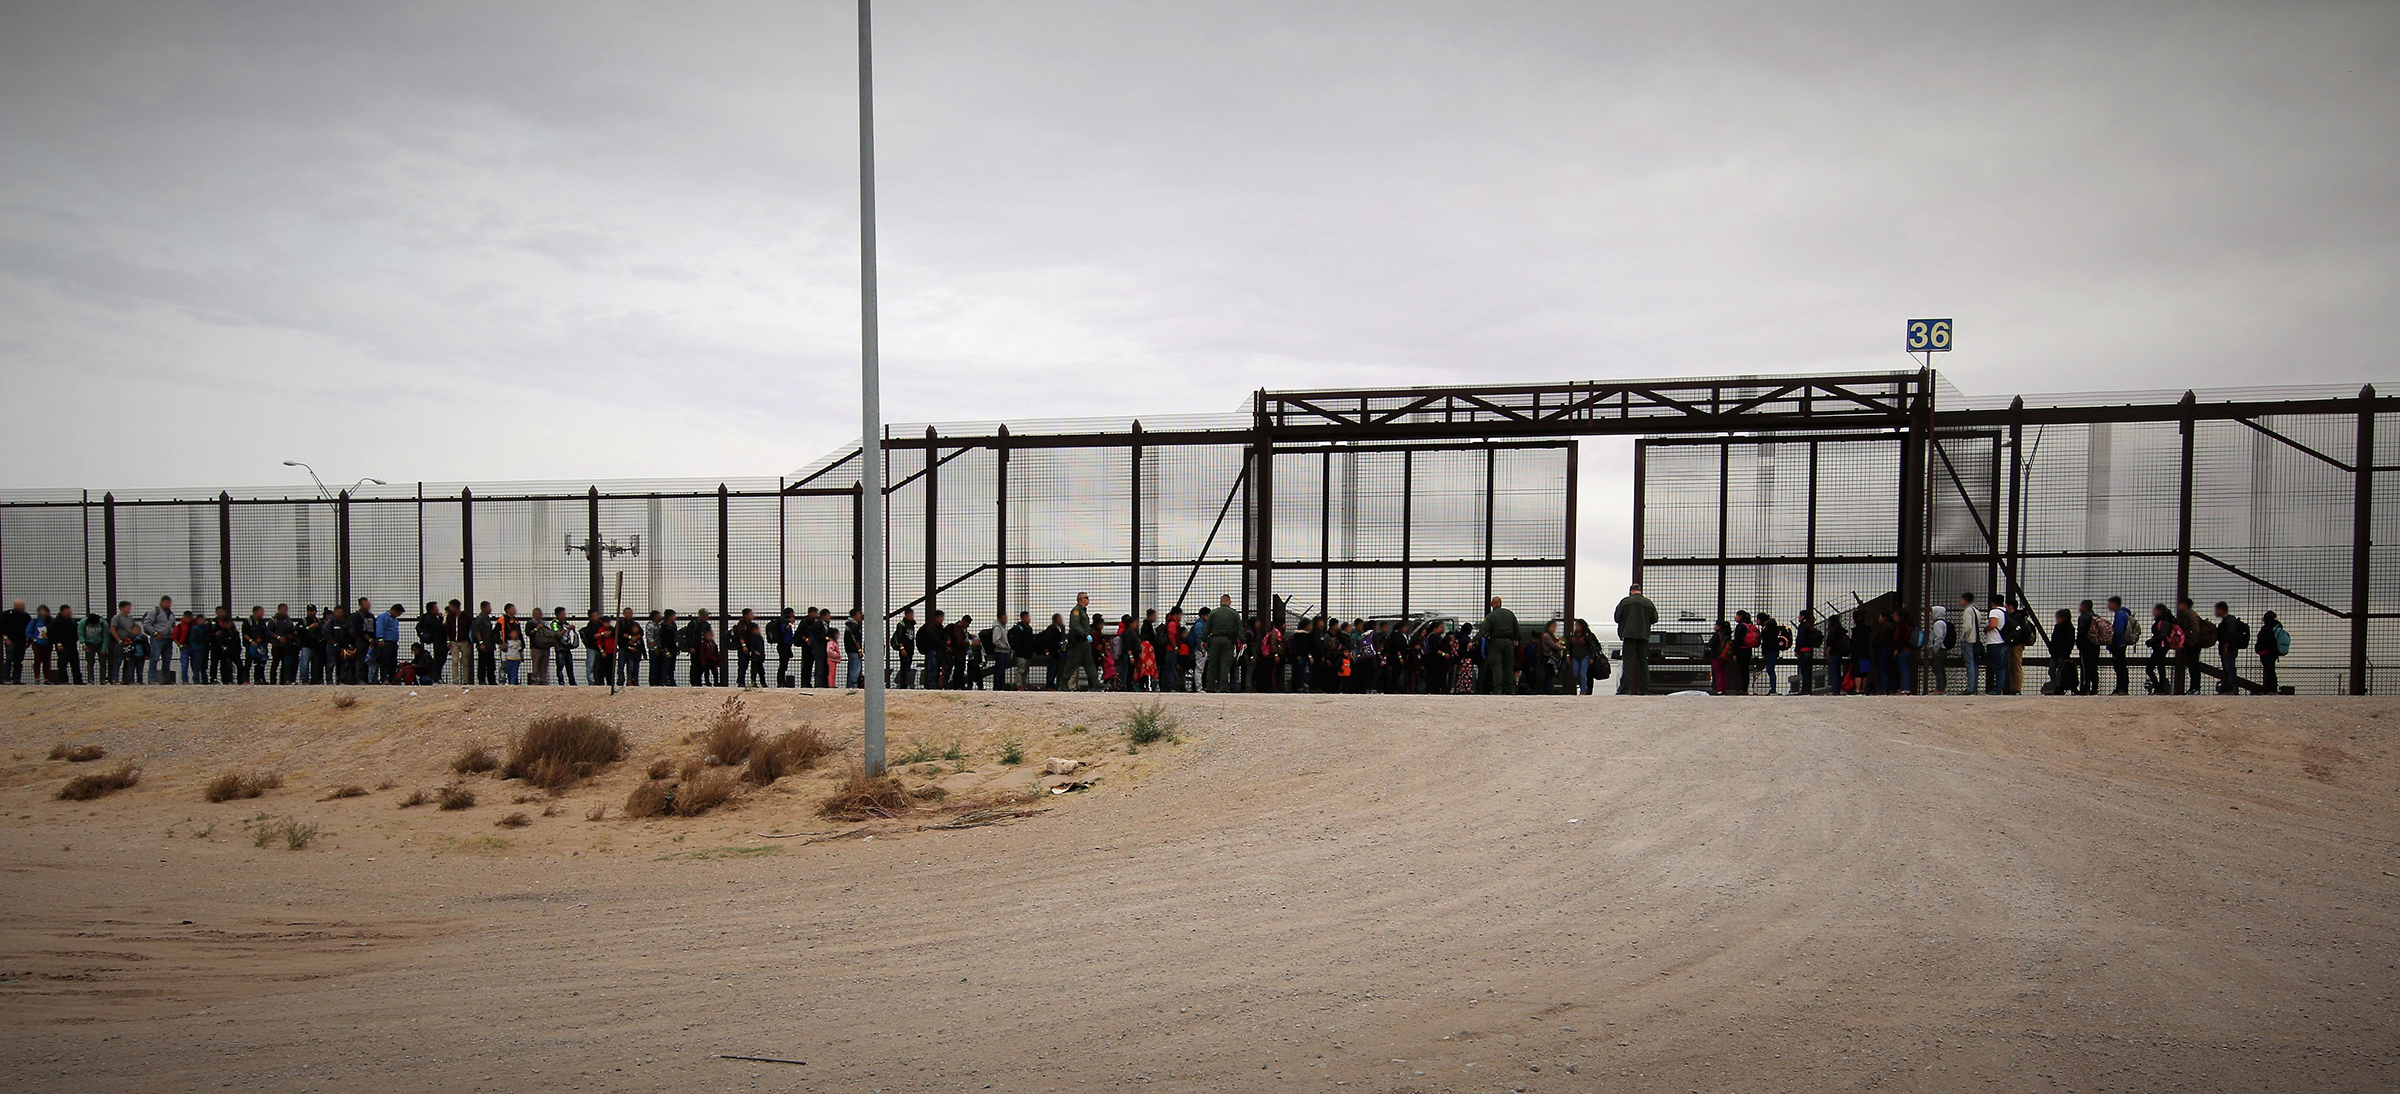 Migrants are shown lined up outside the wall in El Paso, Texas, on March 7. This group of 127 Guatemalan migrants had waded through the river to turn themselves in to U.S. agents, the first step in initiating the asylum process. MUST CREDIT: Photo courtesy of the U.S. Customs and Border Protection.